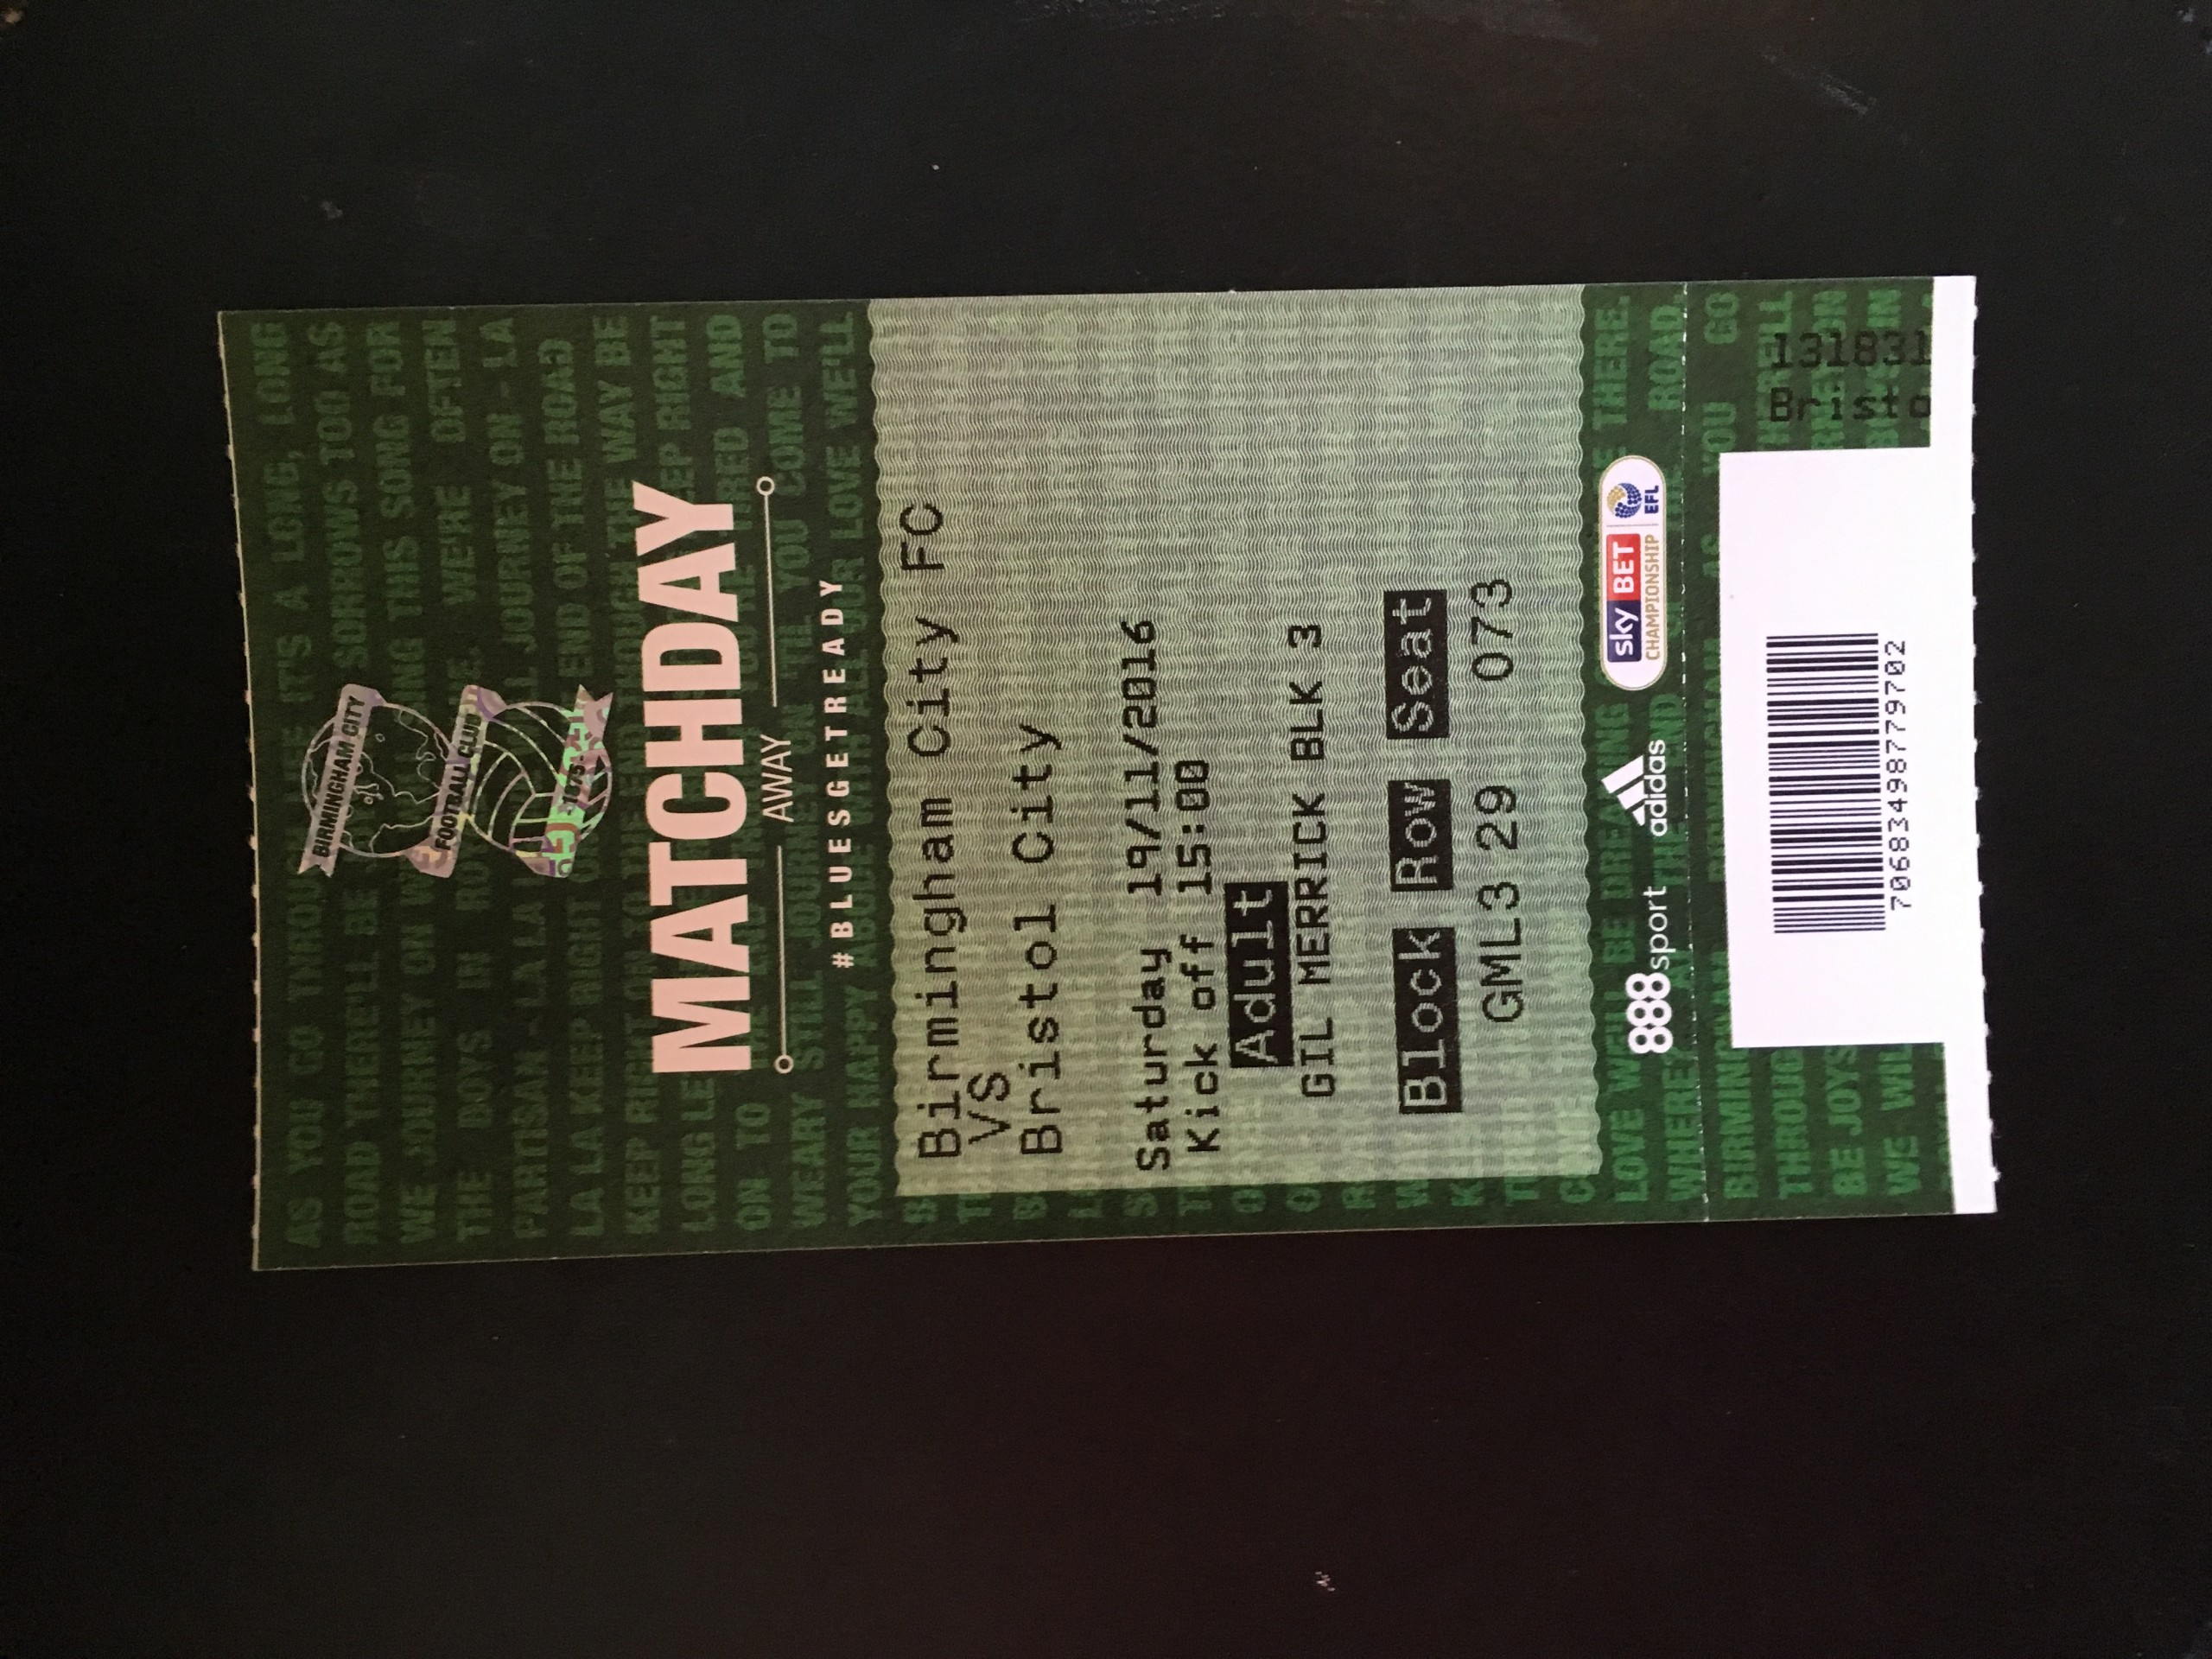 Birmingham City v Bristol City 19-11-2016 Ticket